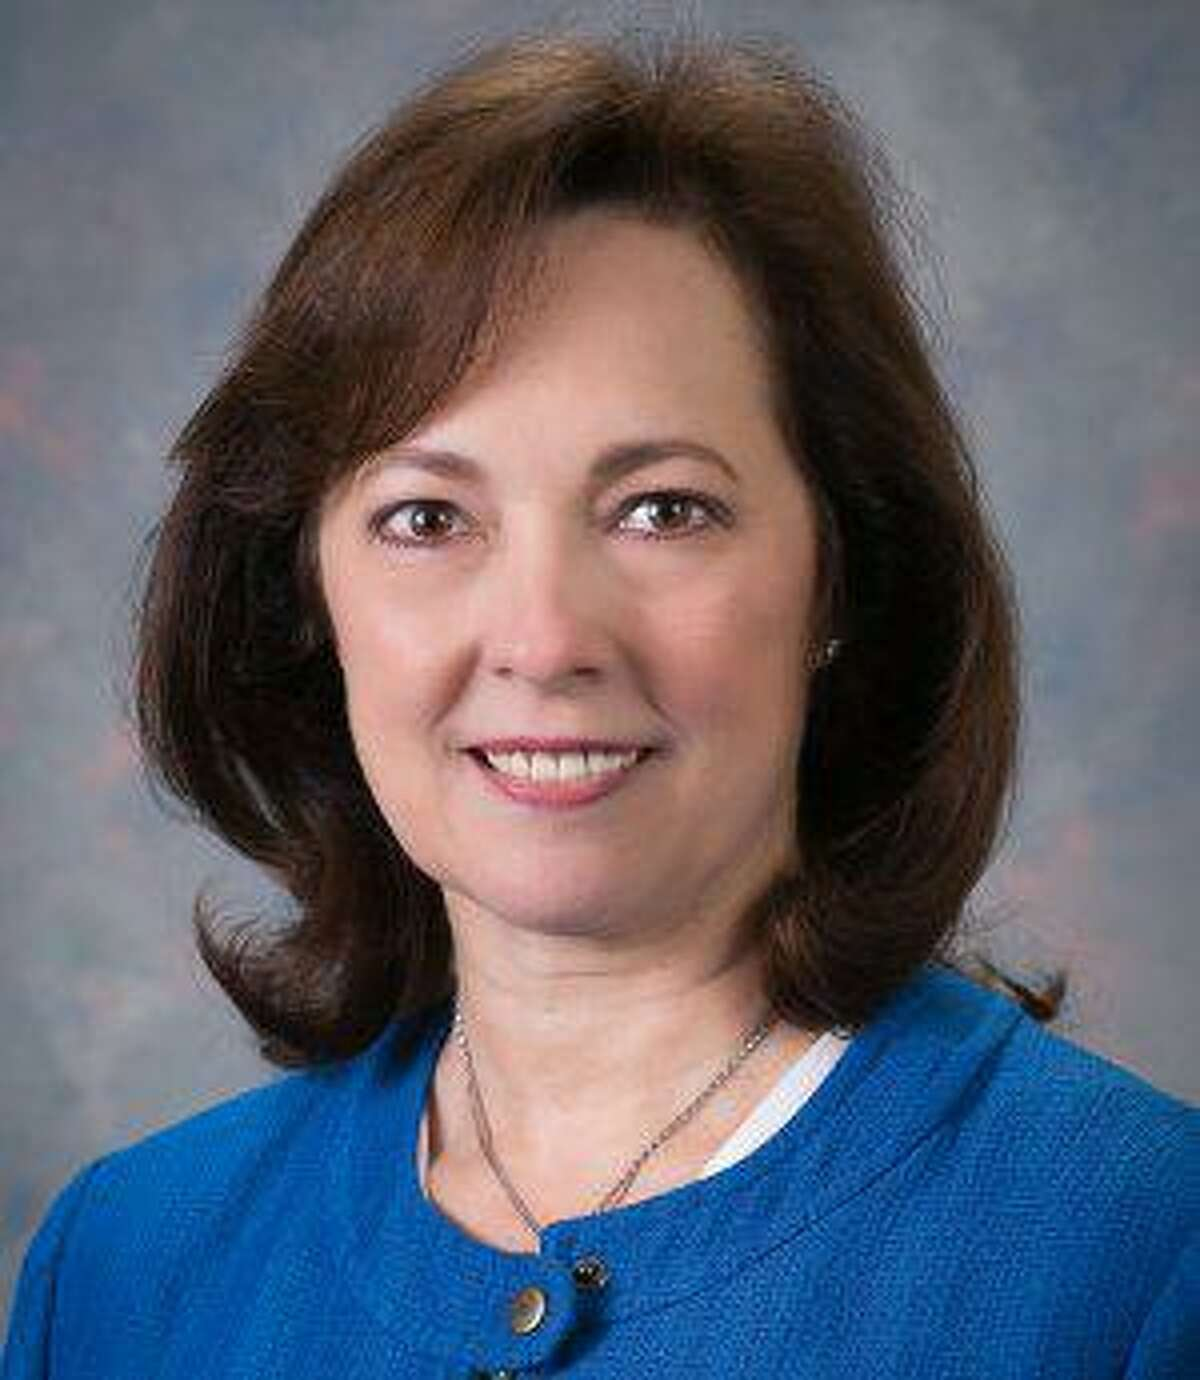 Texas Inc. President and Chief Executive Officer Sallie Rainer has been appointed to the Lone Star College Foundation board of directors.